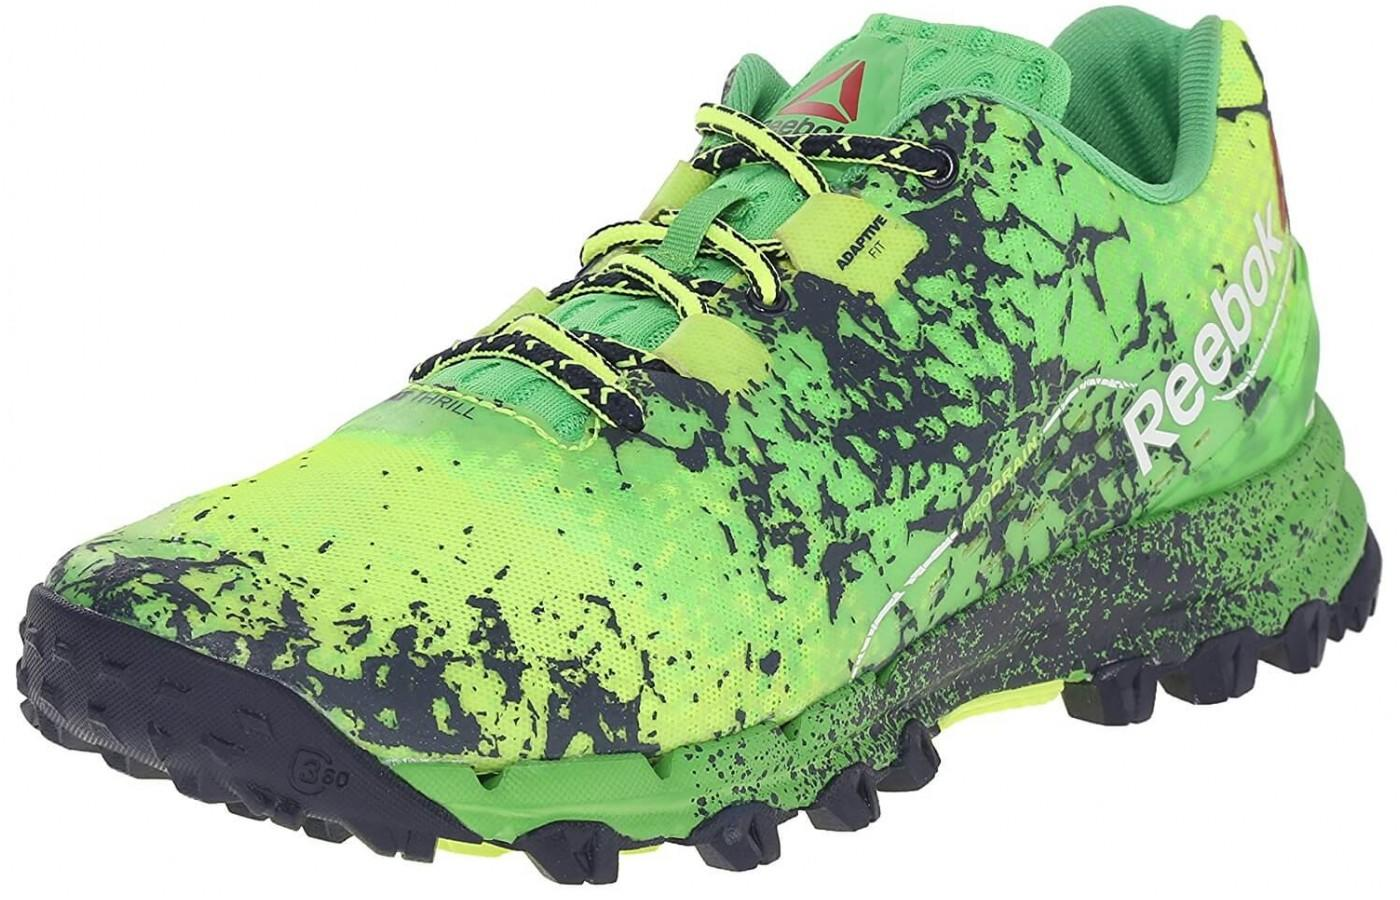 Reebok All Terrain Thrill has a distinct look